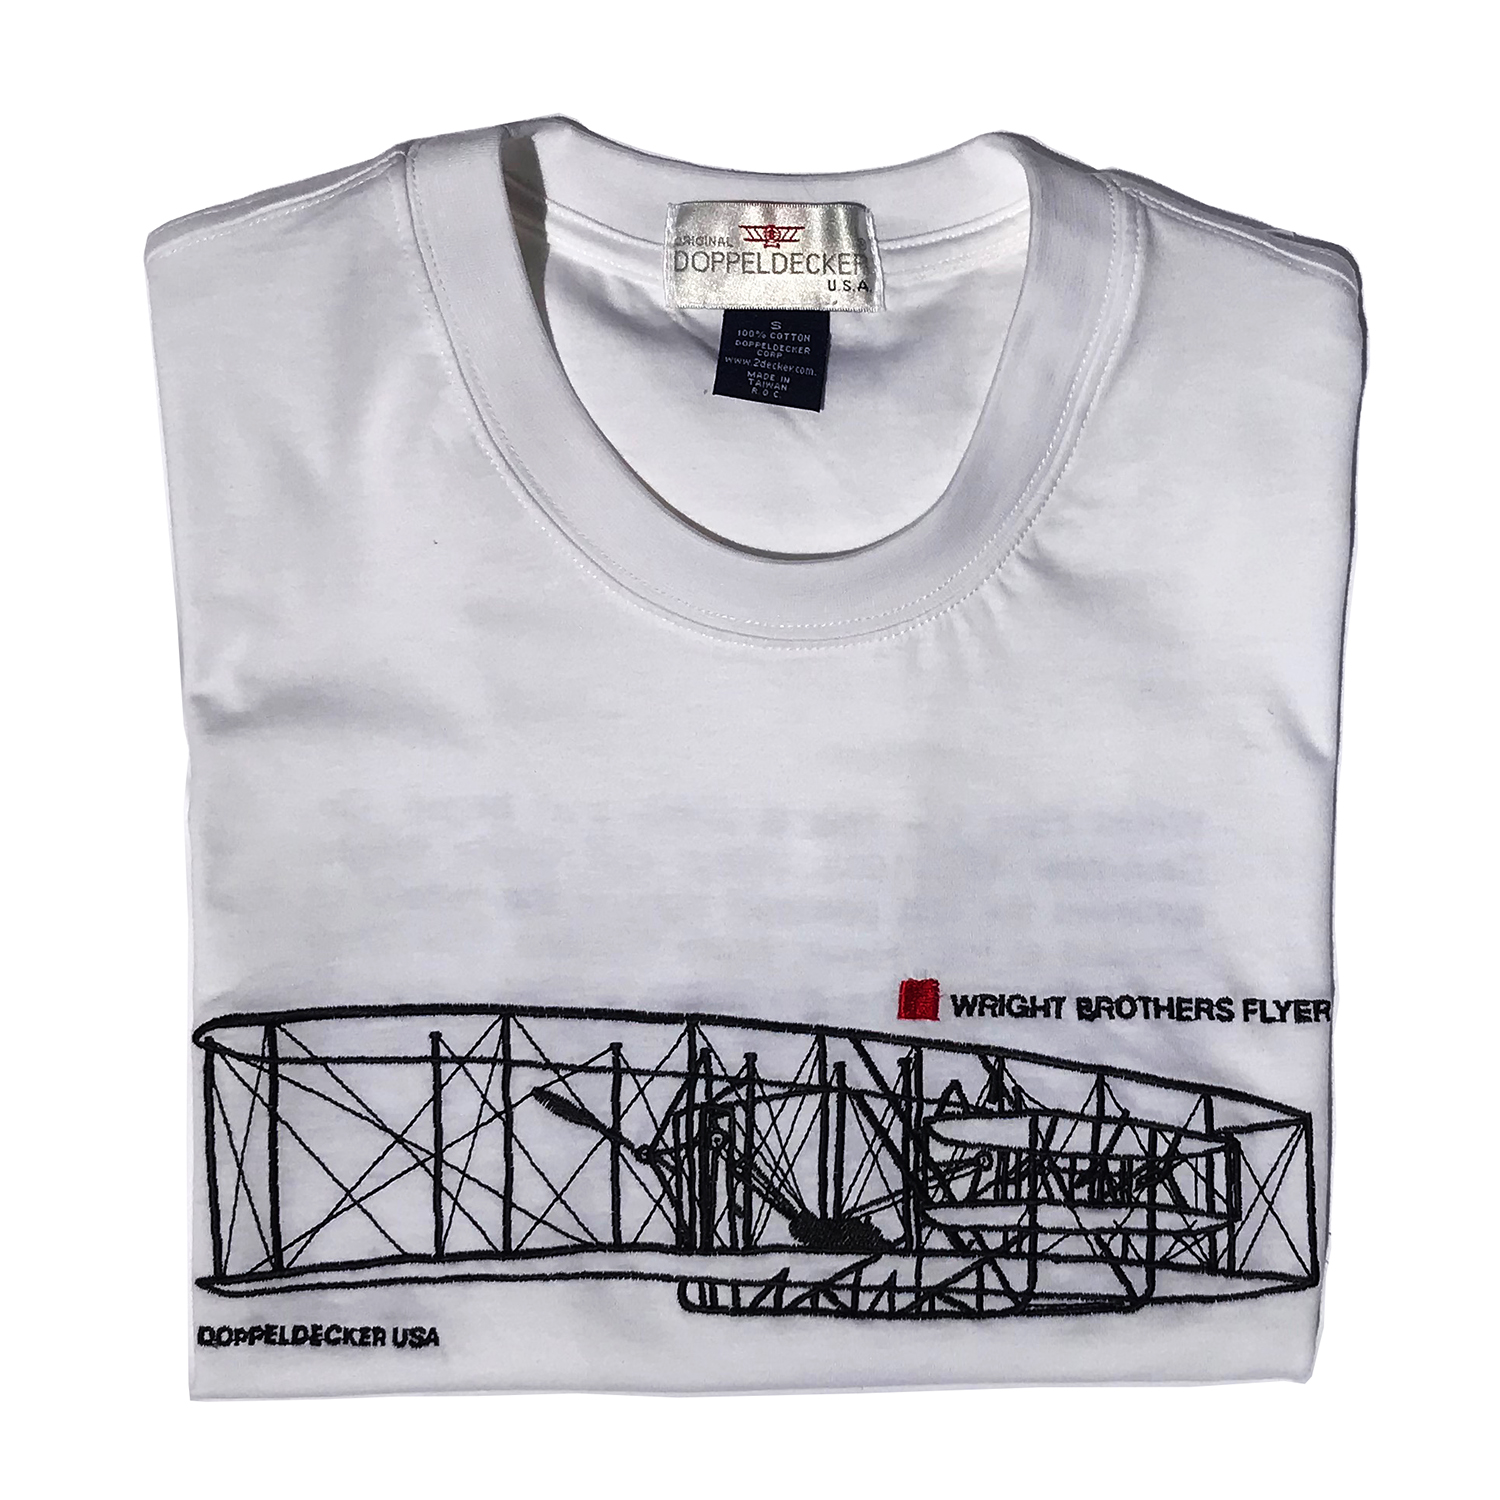 Wright Flyer t-shirt in white